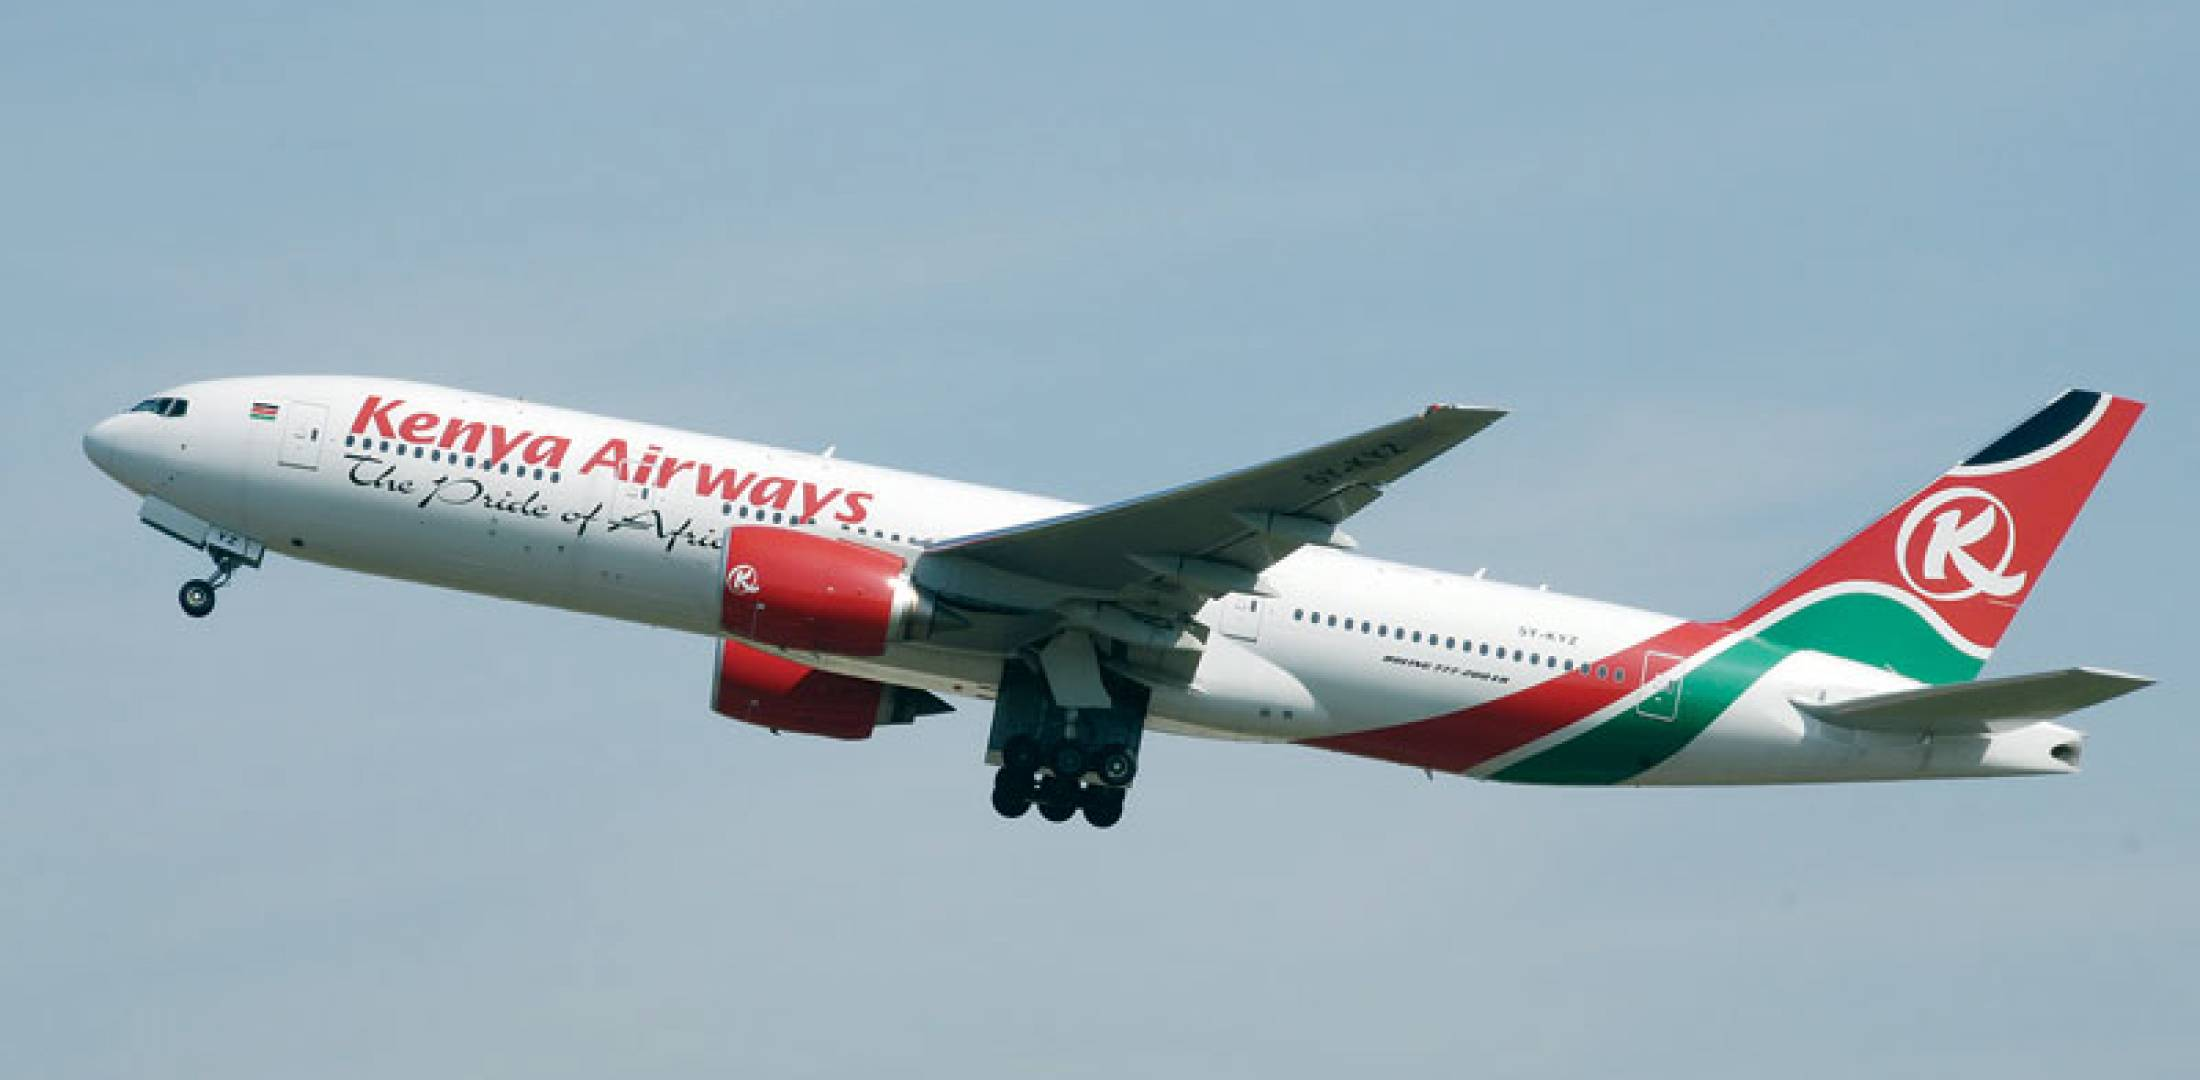 Experts say African airlines such as Ethiopian Airlines (below), currently the most profitable among the four best-performing national carriers–the other three being Kenya Airways (above), Egyptair and South African Airlines–need to cooperate more on business strategy if they are stop losing market share to European, Middle Eastern and even U.S. carriers.